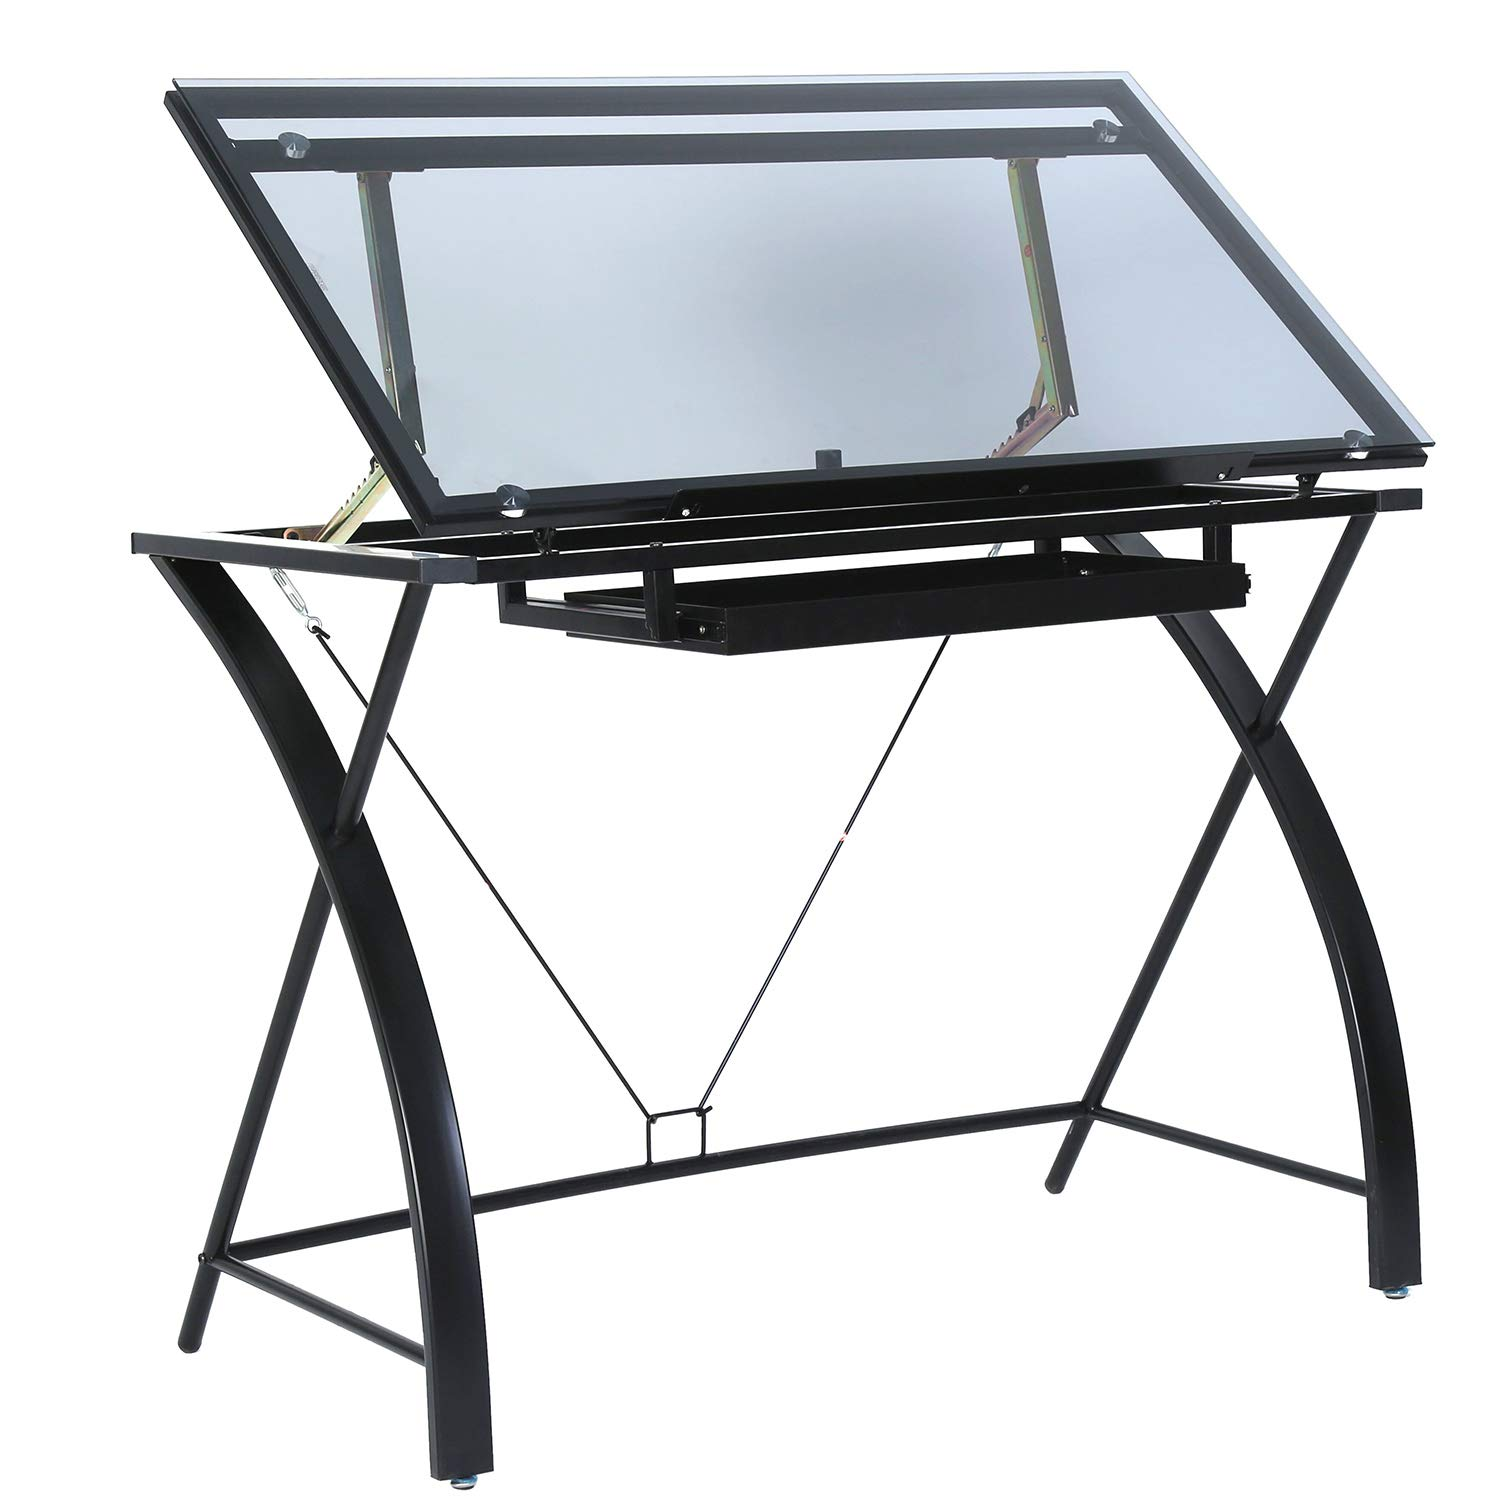 Glass Top Drafting Table - Tiltable and Adjustable Drawing Desk for Artists - Modern Craft Station with Large Working Surface - for Artwork, Graphic Design, Sketching and Tracing - Grey Tempered Glass by MEEDEN